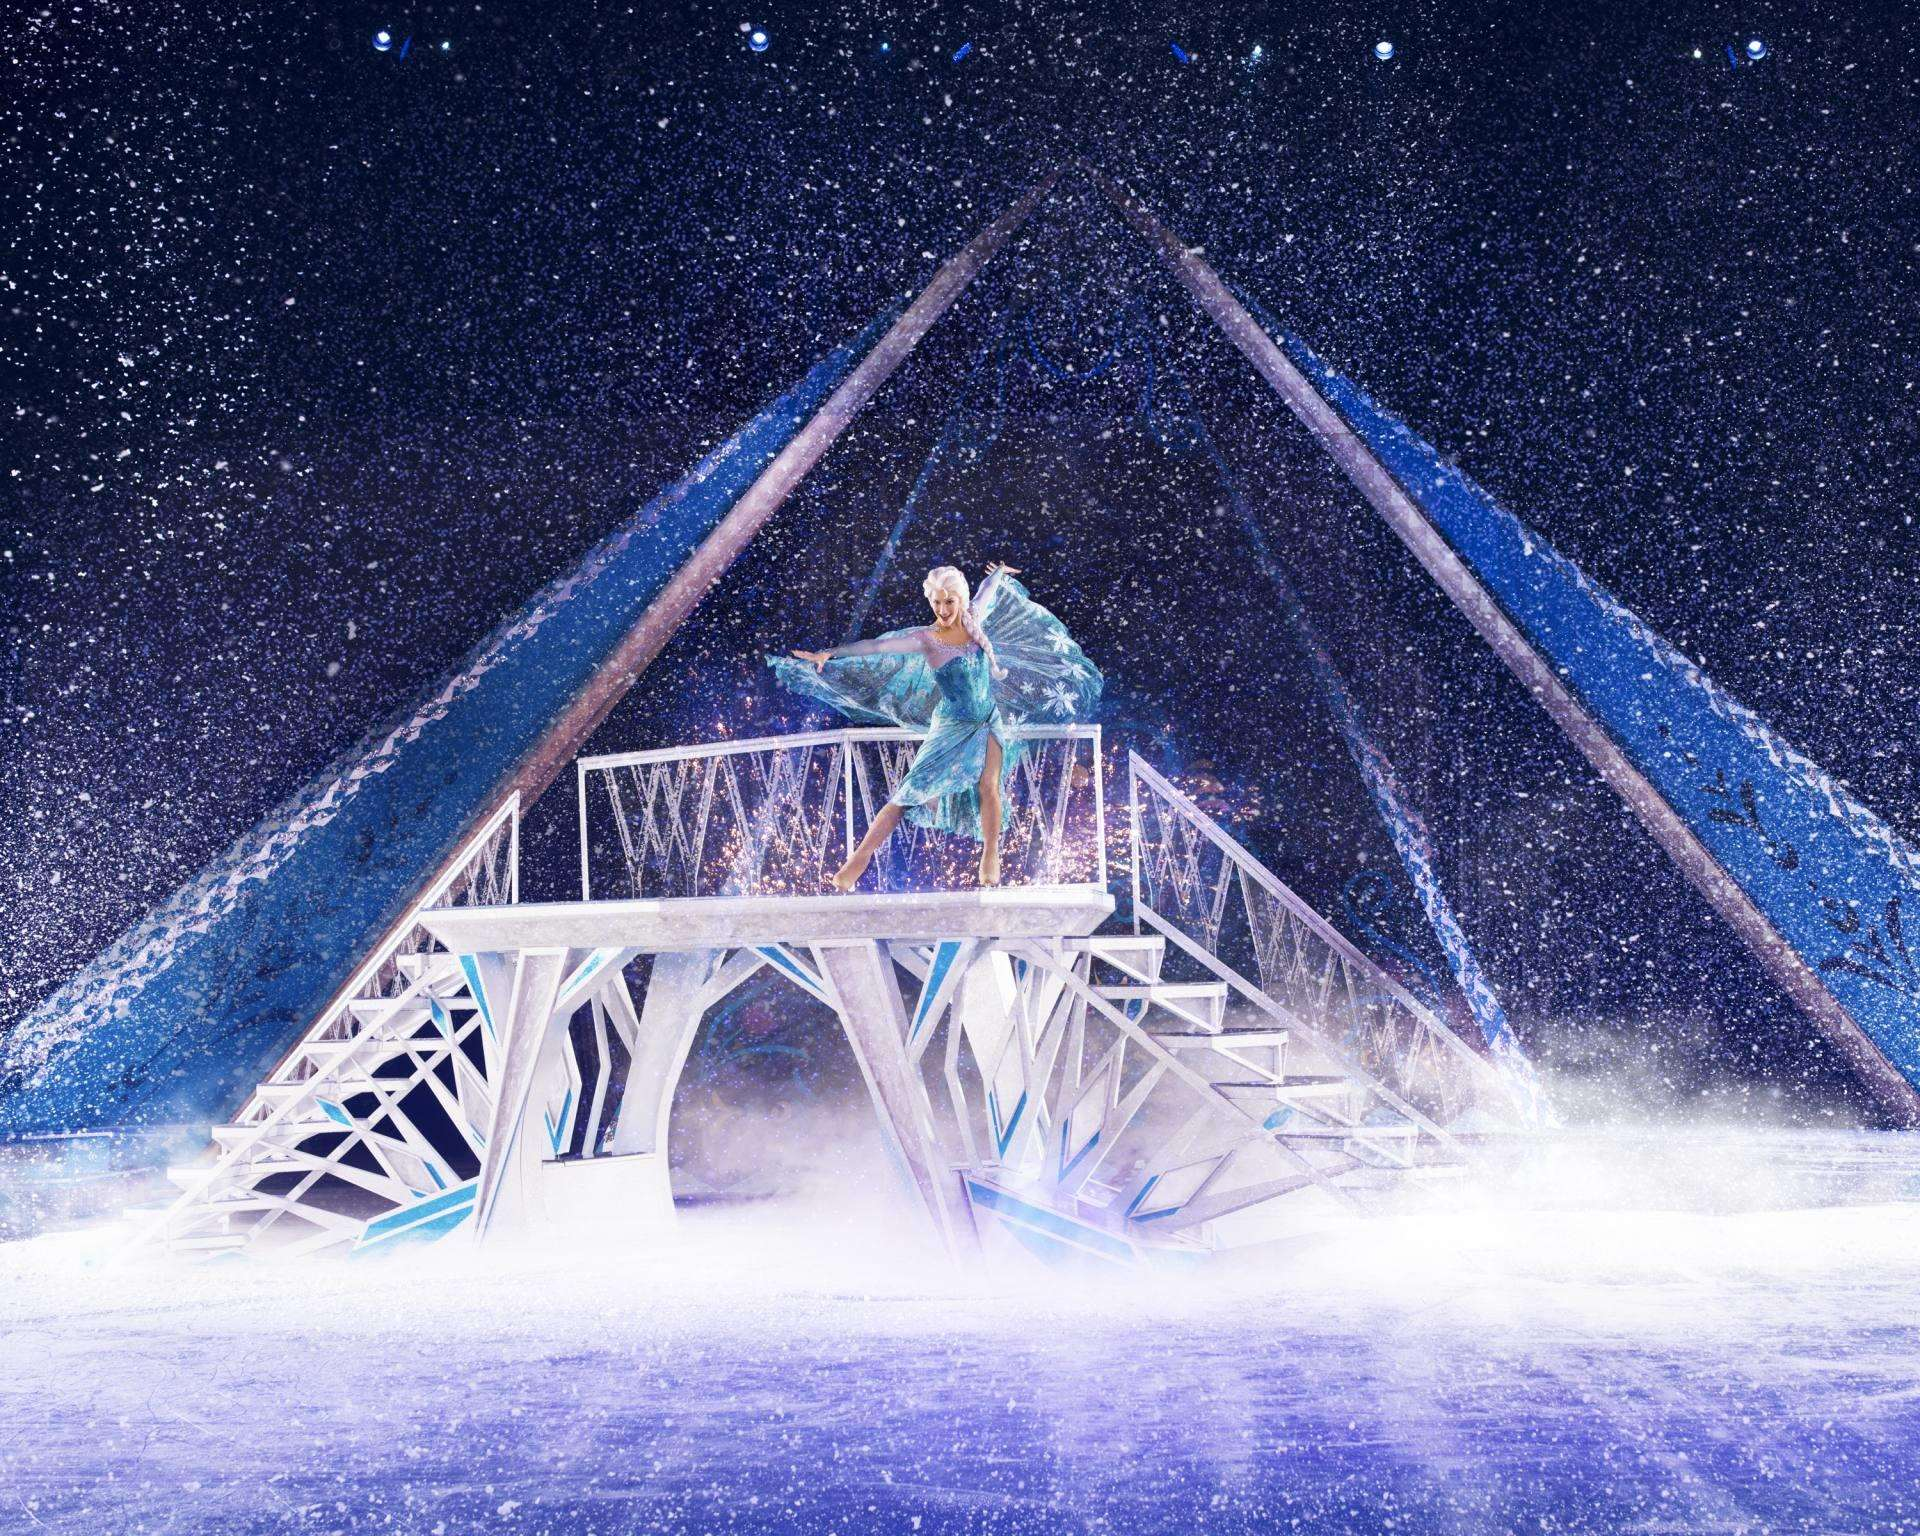 Win a Family Ticket to Disney on Ice-Frozen, D34 20140829 00965 RGB edit%, uncategorised%